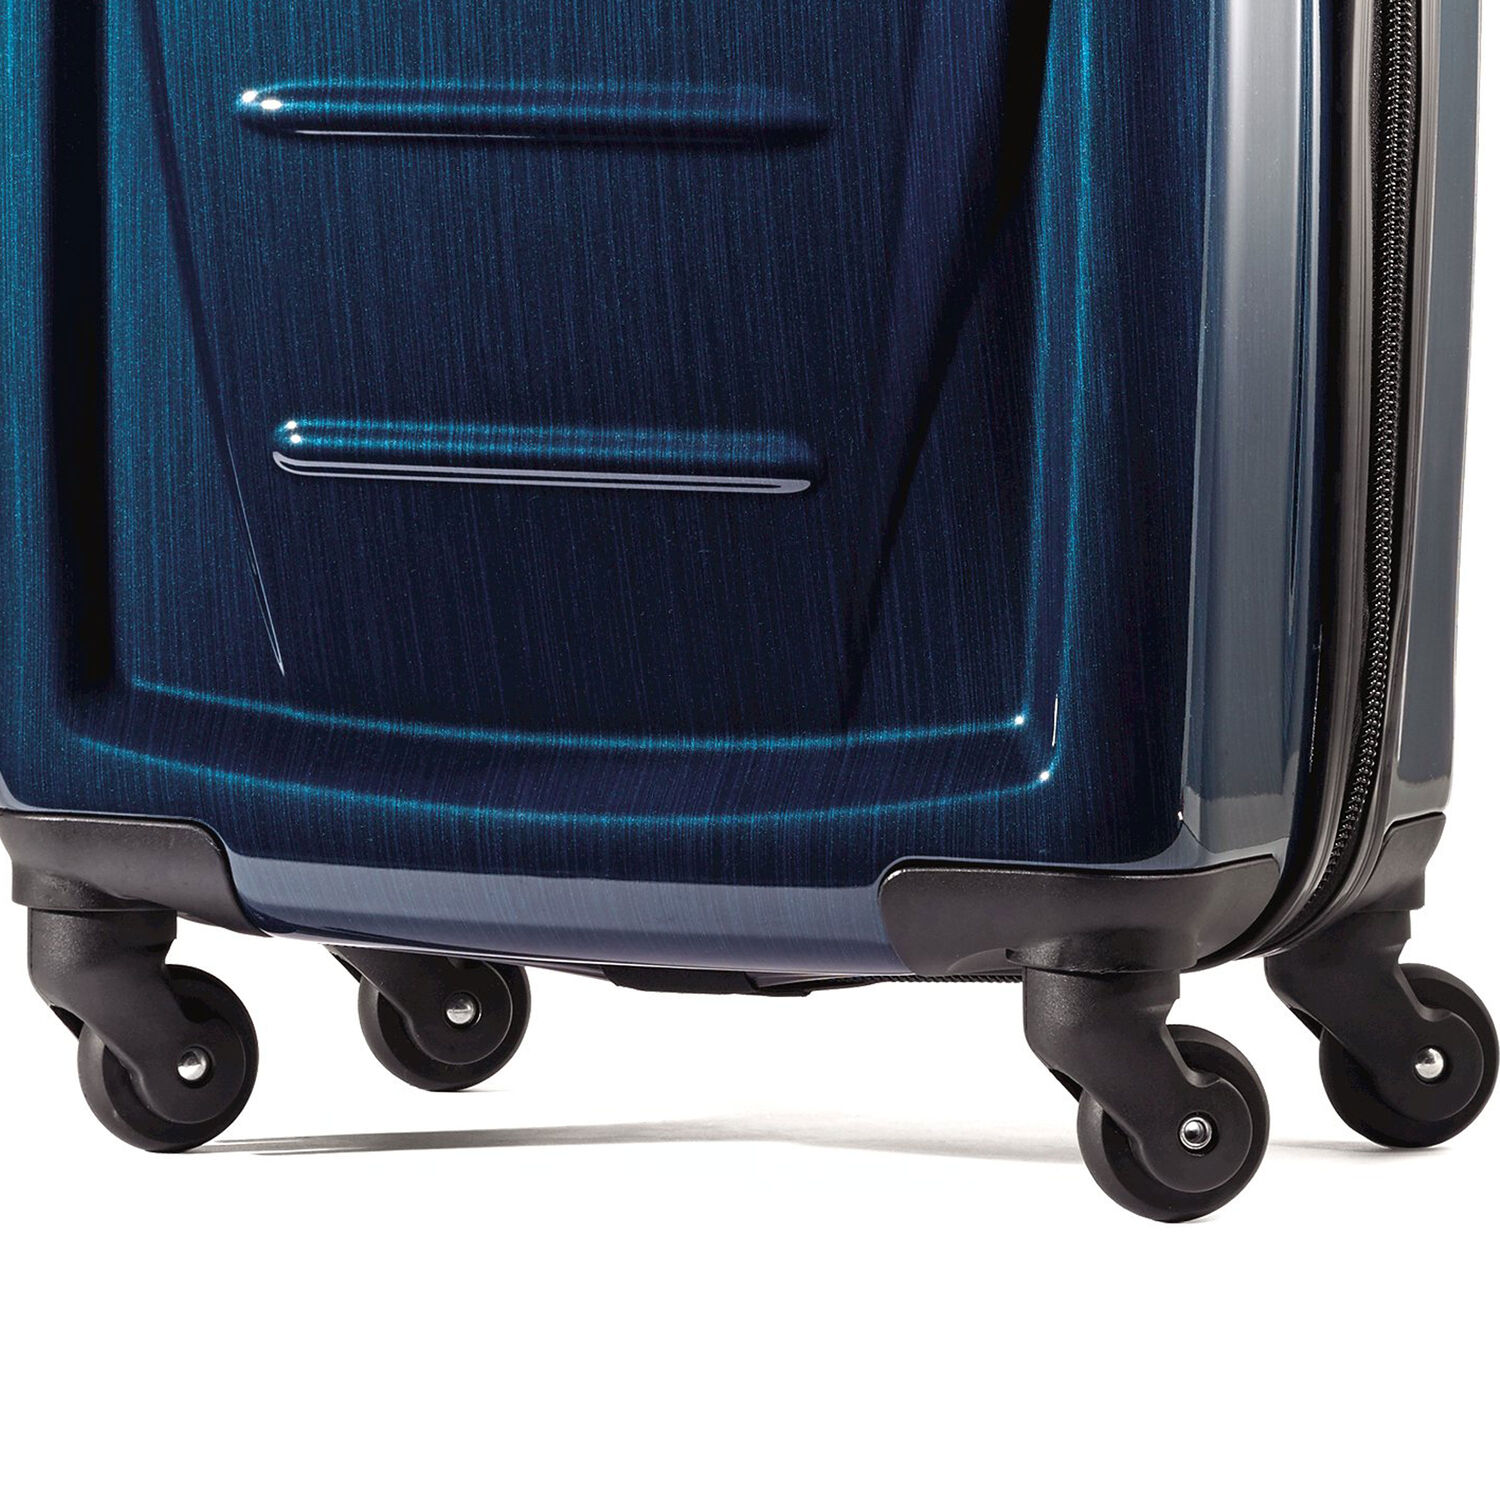 c151d663d7 Samsonite Winfield 2 Fashion 20 quot  Spinner in the color Deep ...